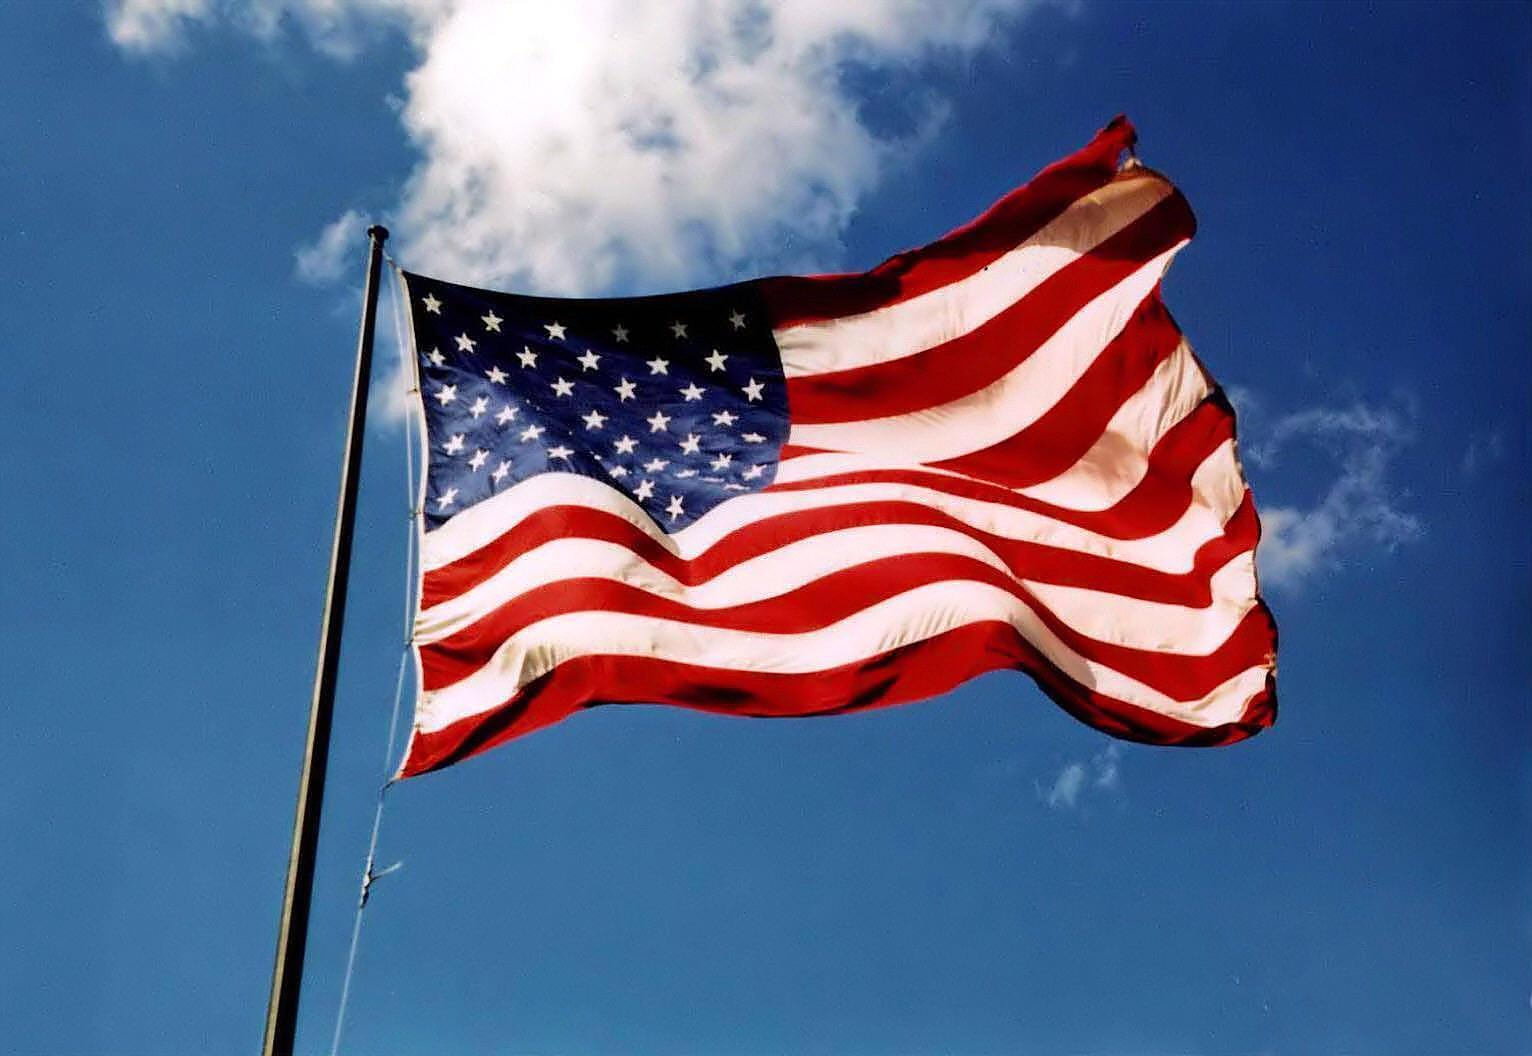 Nissan Columbus Ohio >> Free E-book on how to properly display the American Flag ...